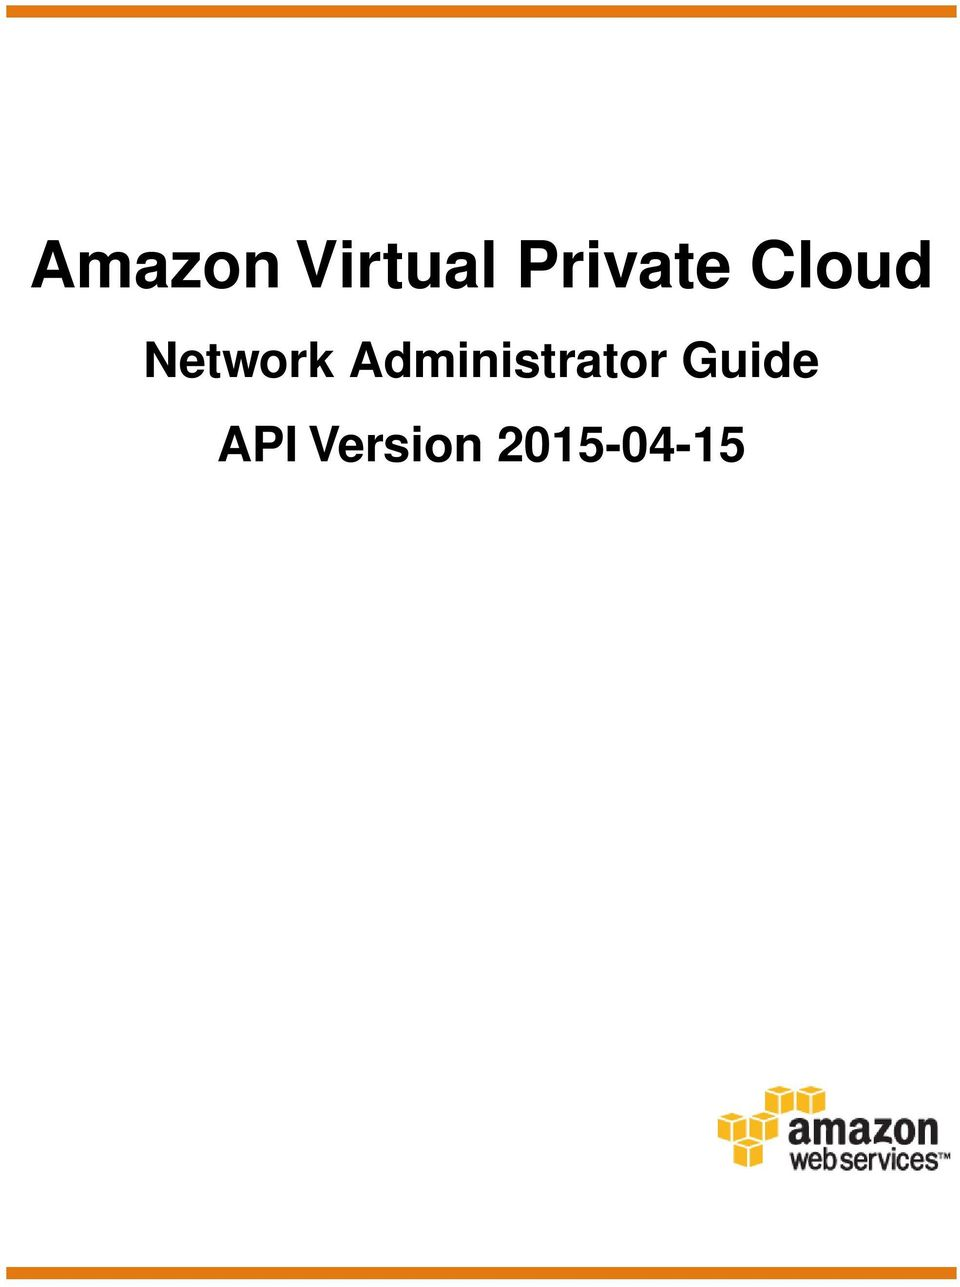 hight resolution of 2 amazon virtual private cloud network administrator copyright 2015 amazon web services inc and or its affiliates all rights reserved